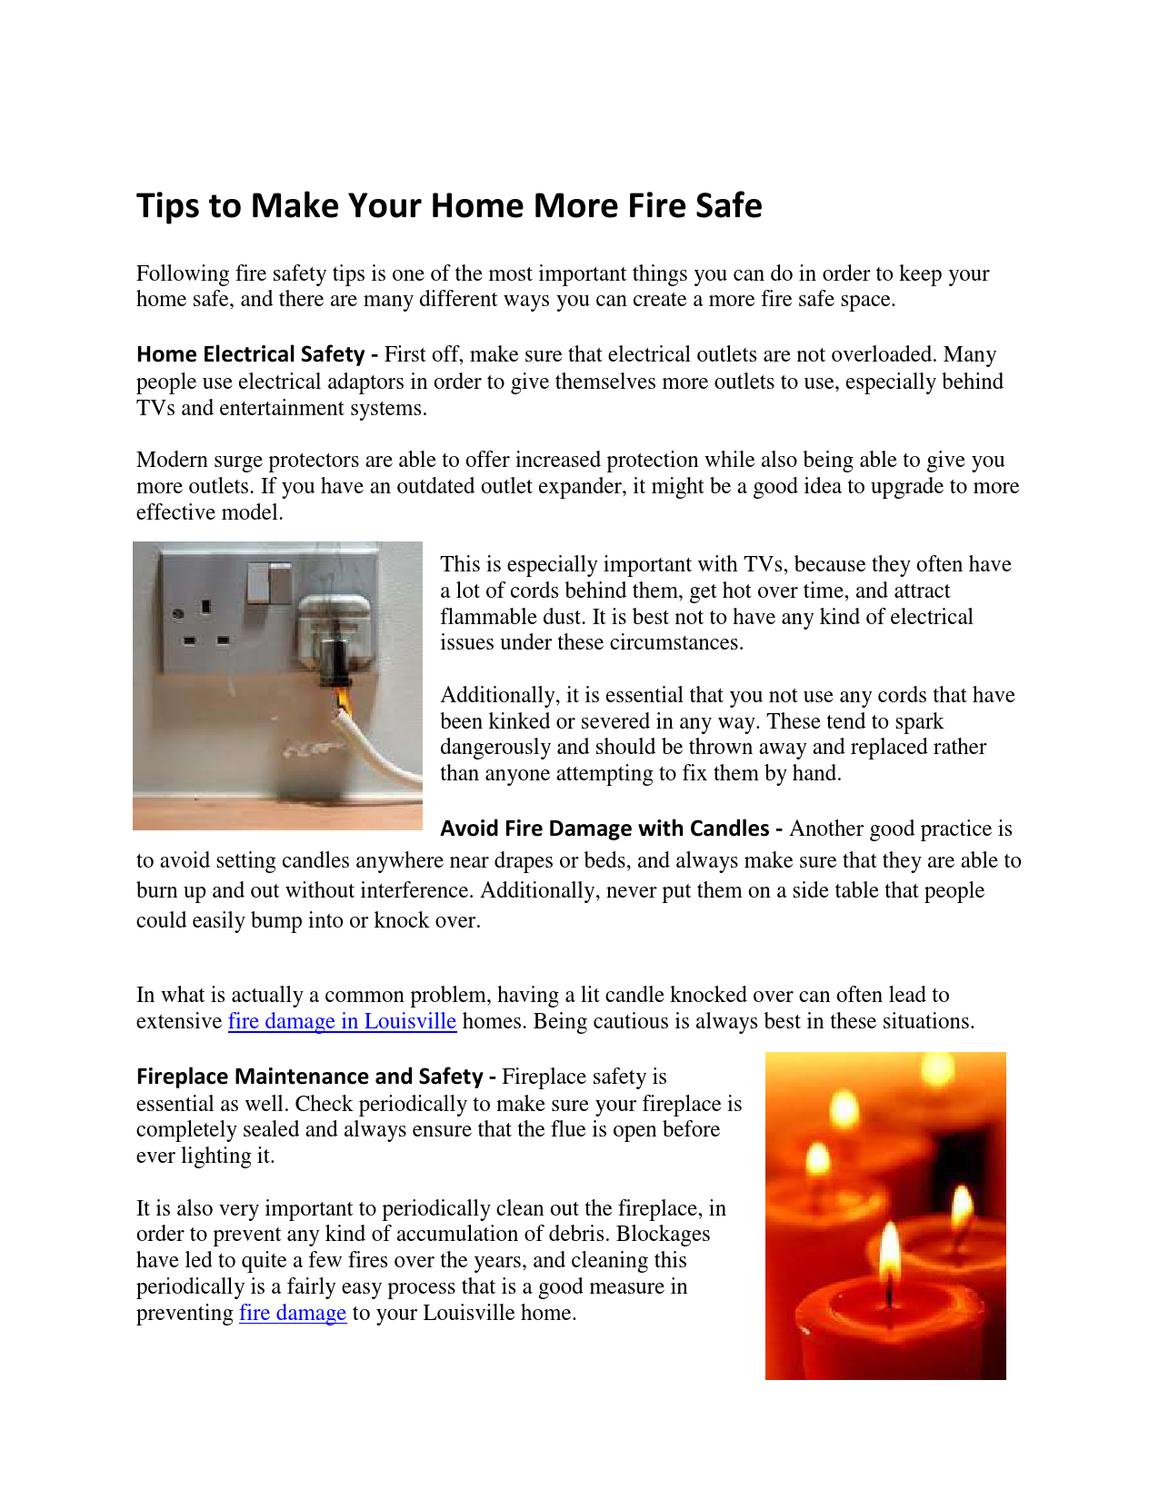 Tips to Make Your Home More Fire Safe by McClain My - issuu